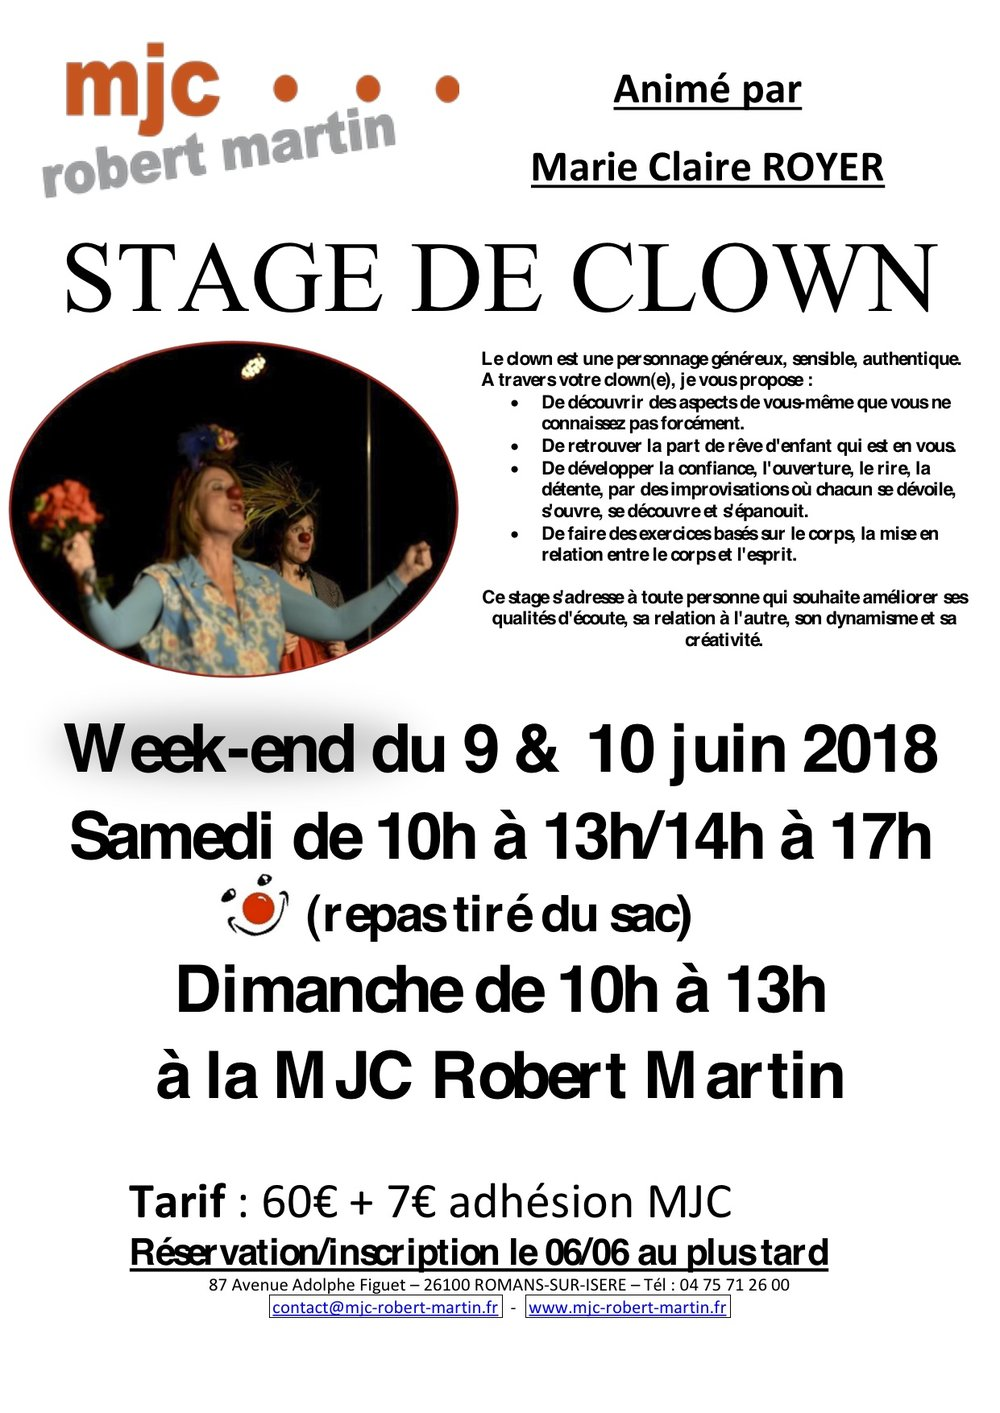 AFFICHE STAGE CLOWN DU 9 ET 10 JUIN.jpg